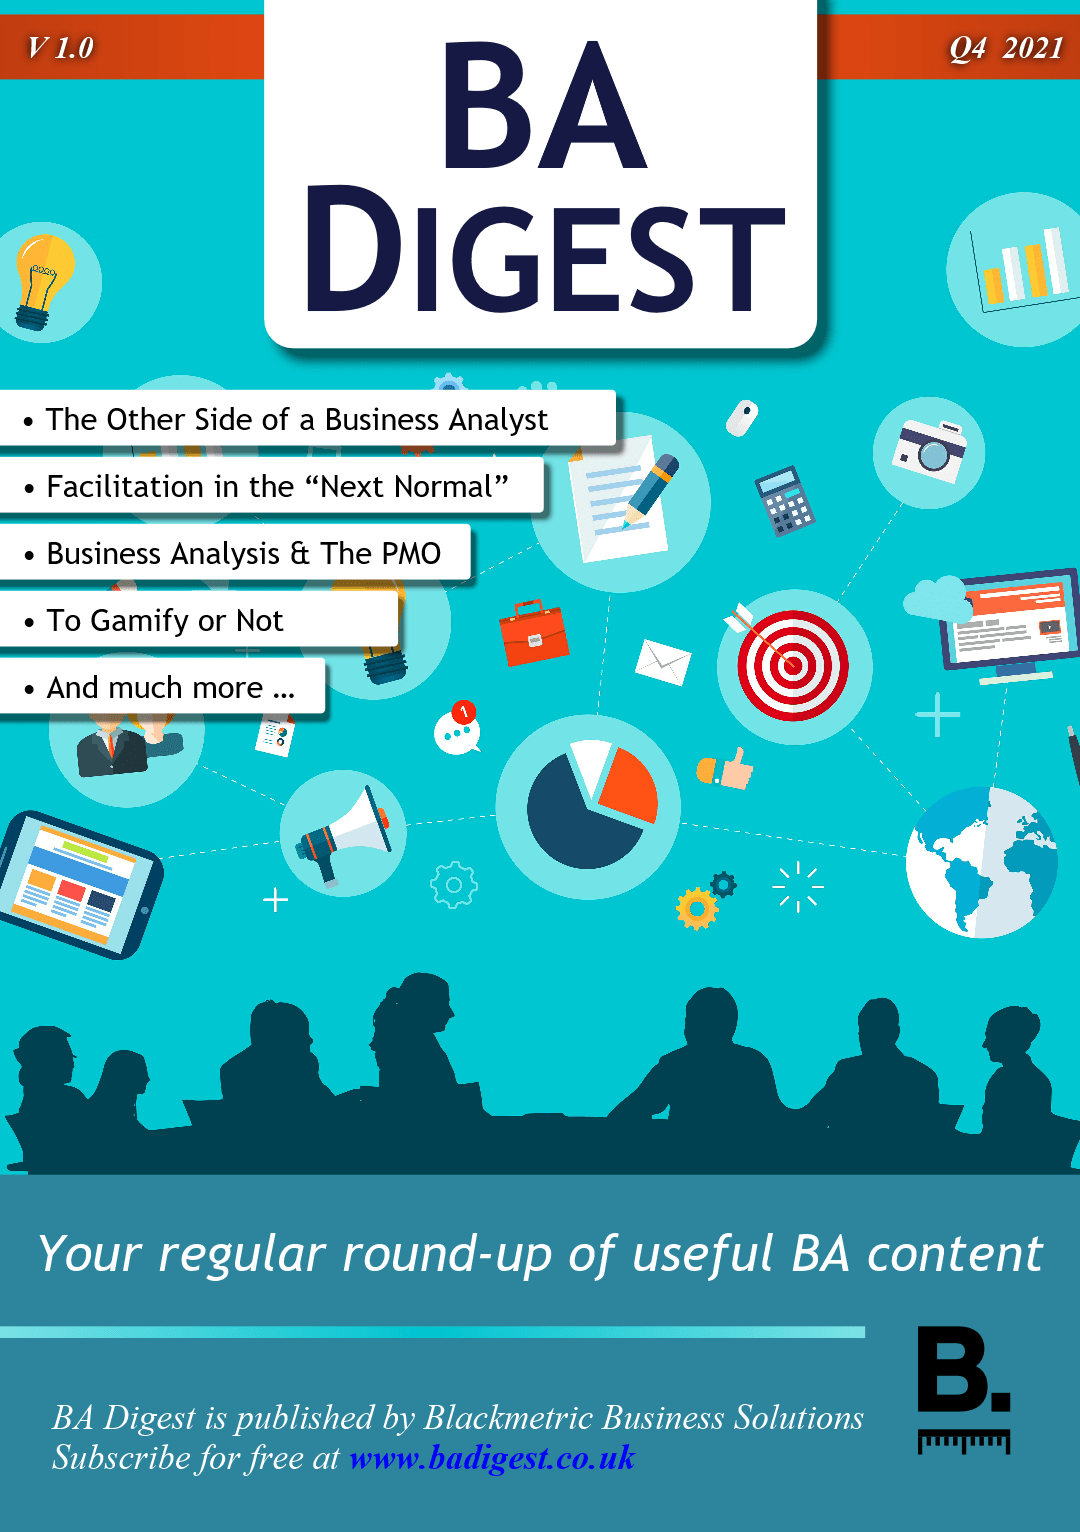 BA Digest: Your regular round up of BA related content. Q4 2021 edition. (Magazine cover)